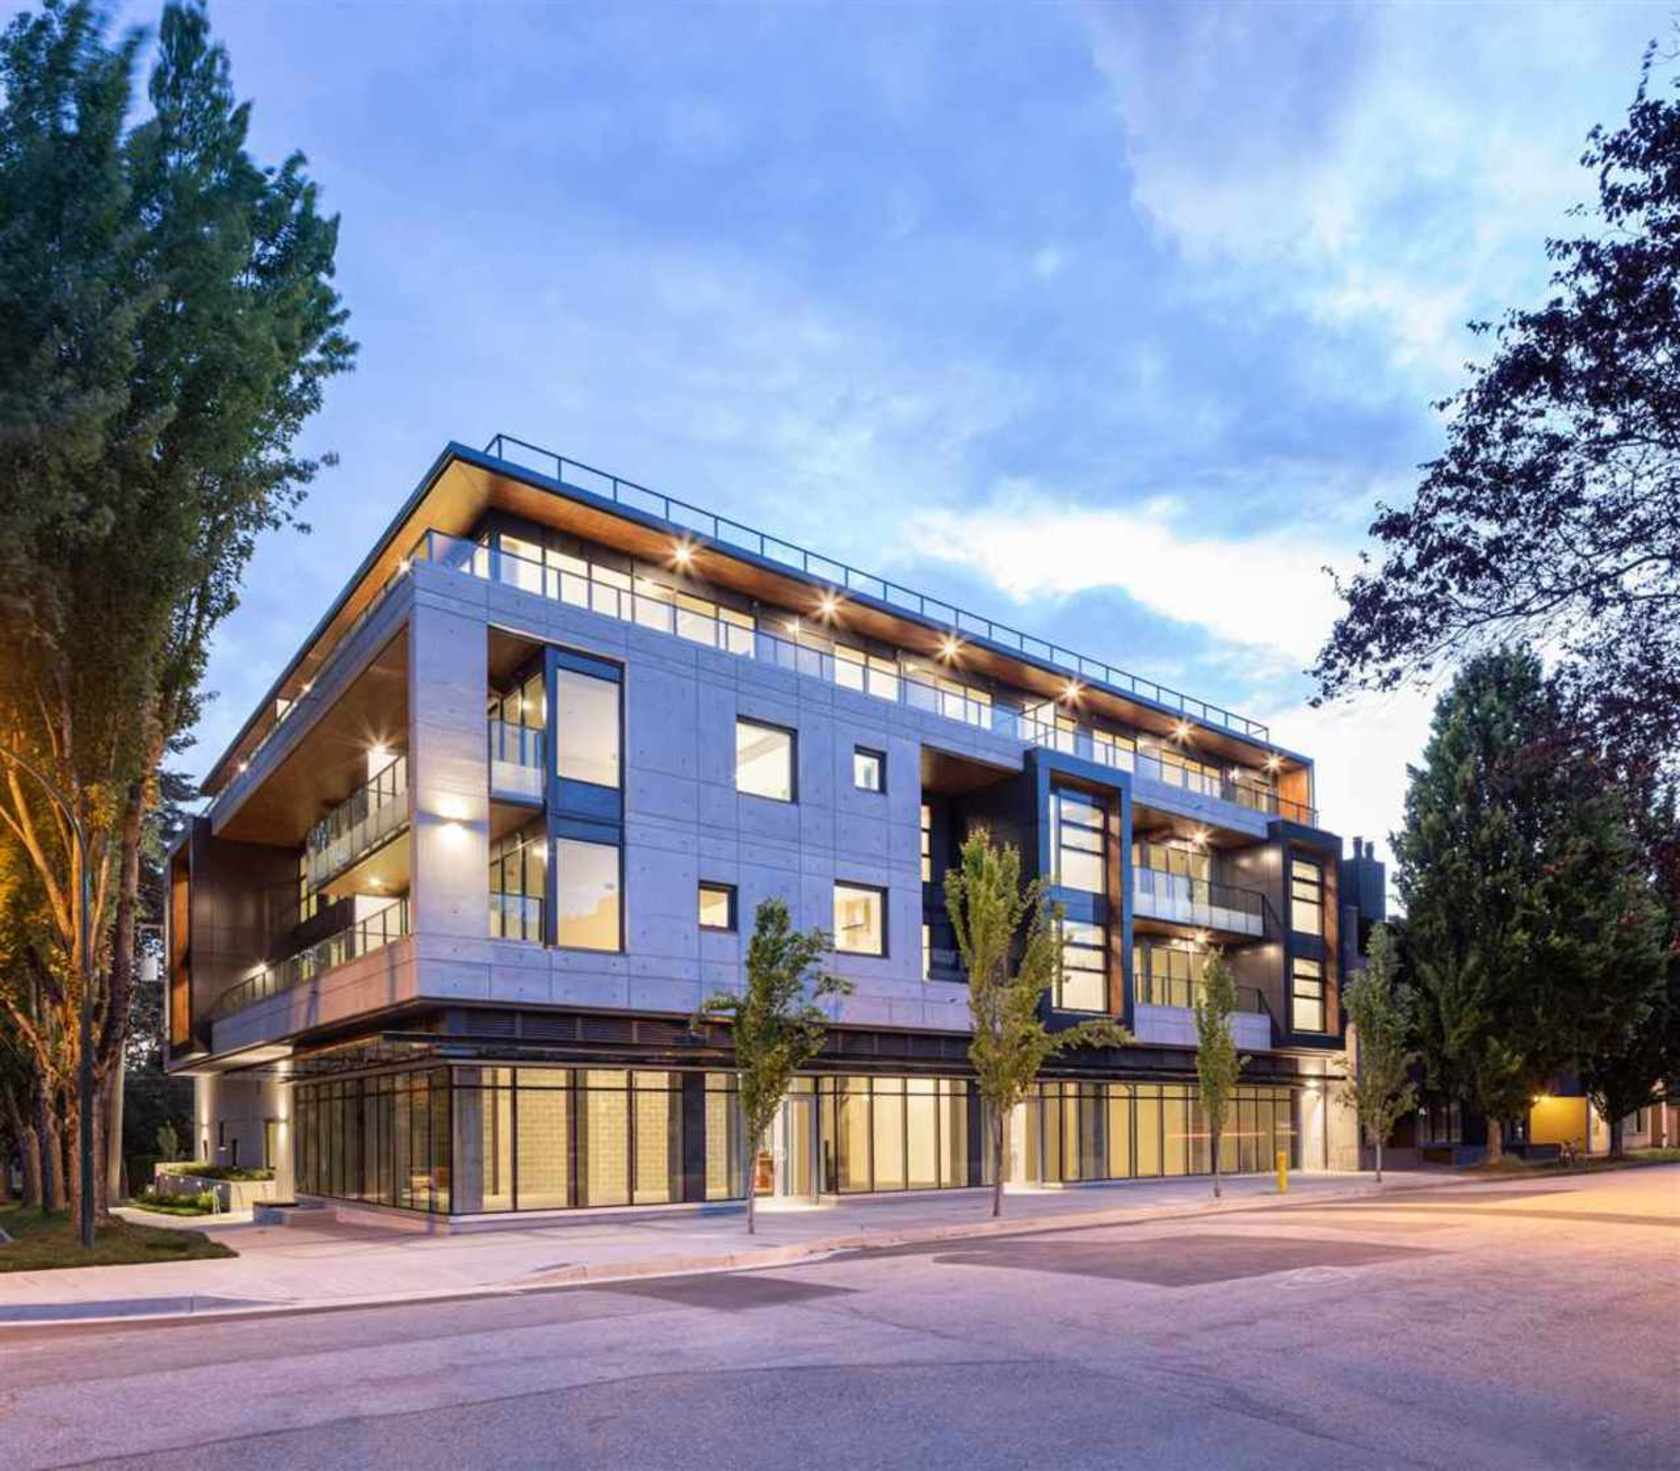 717-w-17-avenue-cambie-vancouver-west-34 at 403 - 717 W 17 Avenue, Cambie, Vancouver West